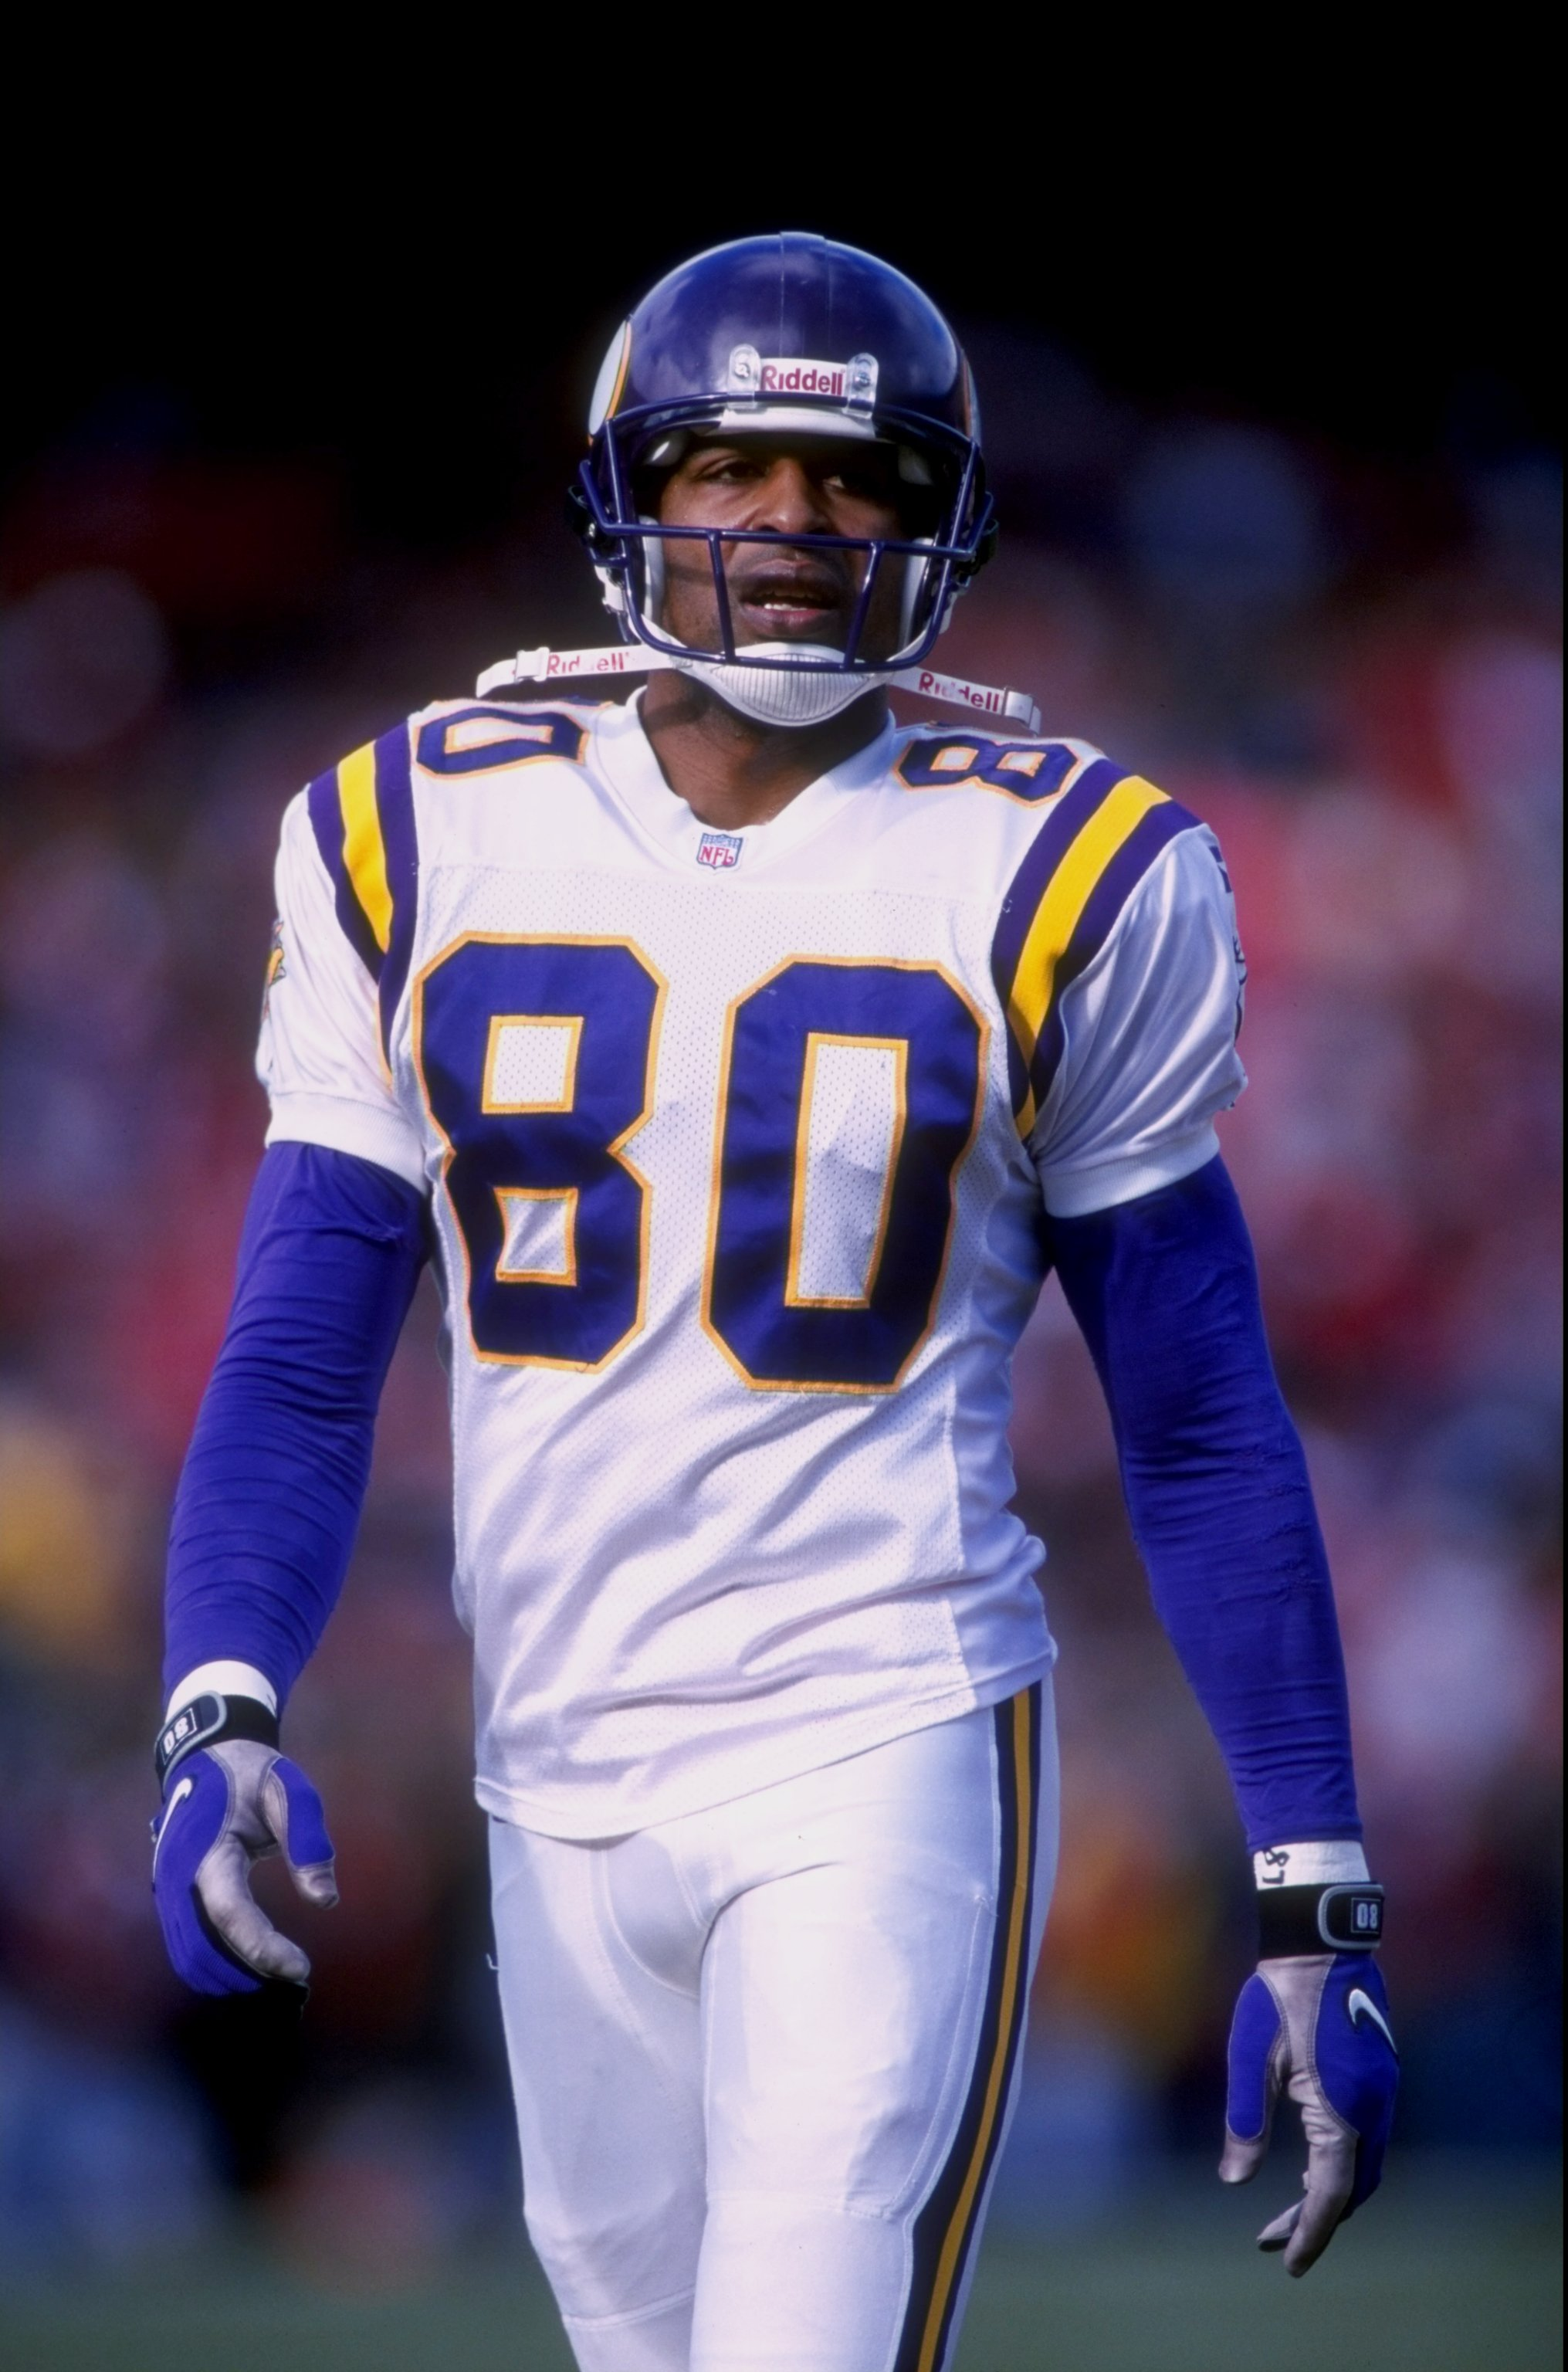 3 Jan 1998: Wide receiver Cris Carter #80 of the Minnesota Vikings during the Vikings 38-22 loss to the San Francisco 49ers at 3 Com Park in San Francisco, California.